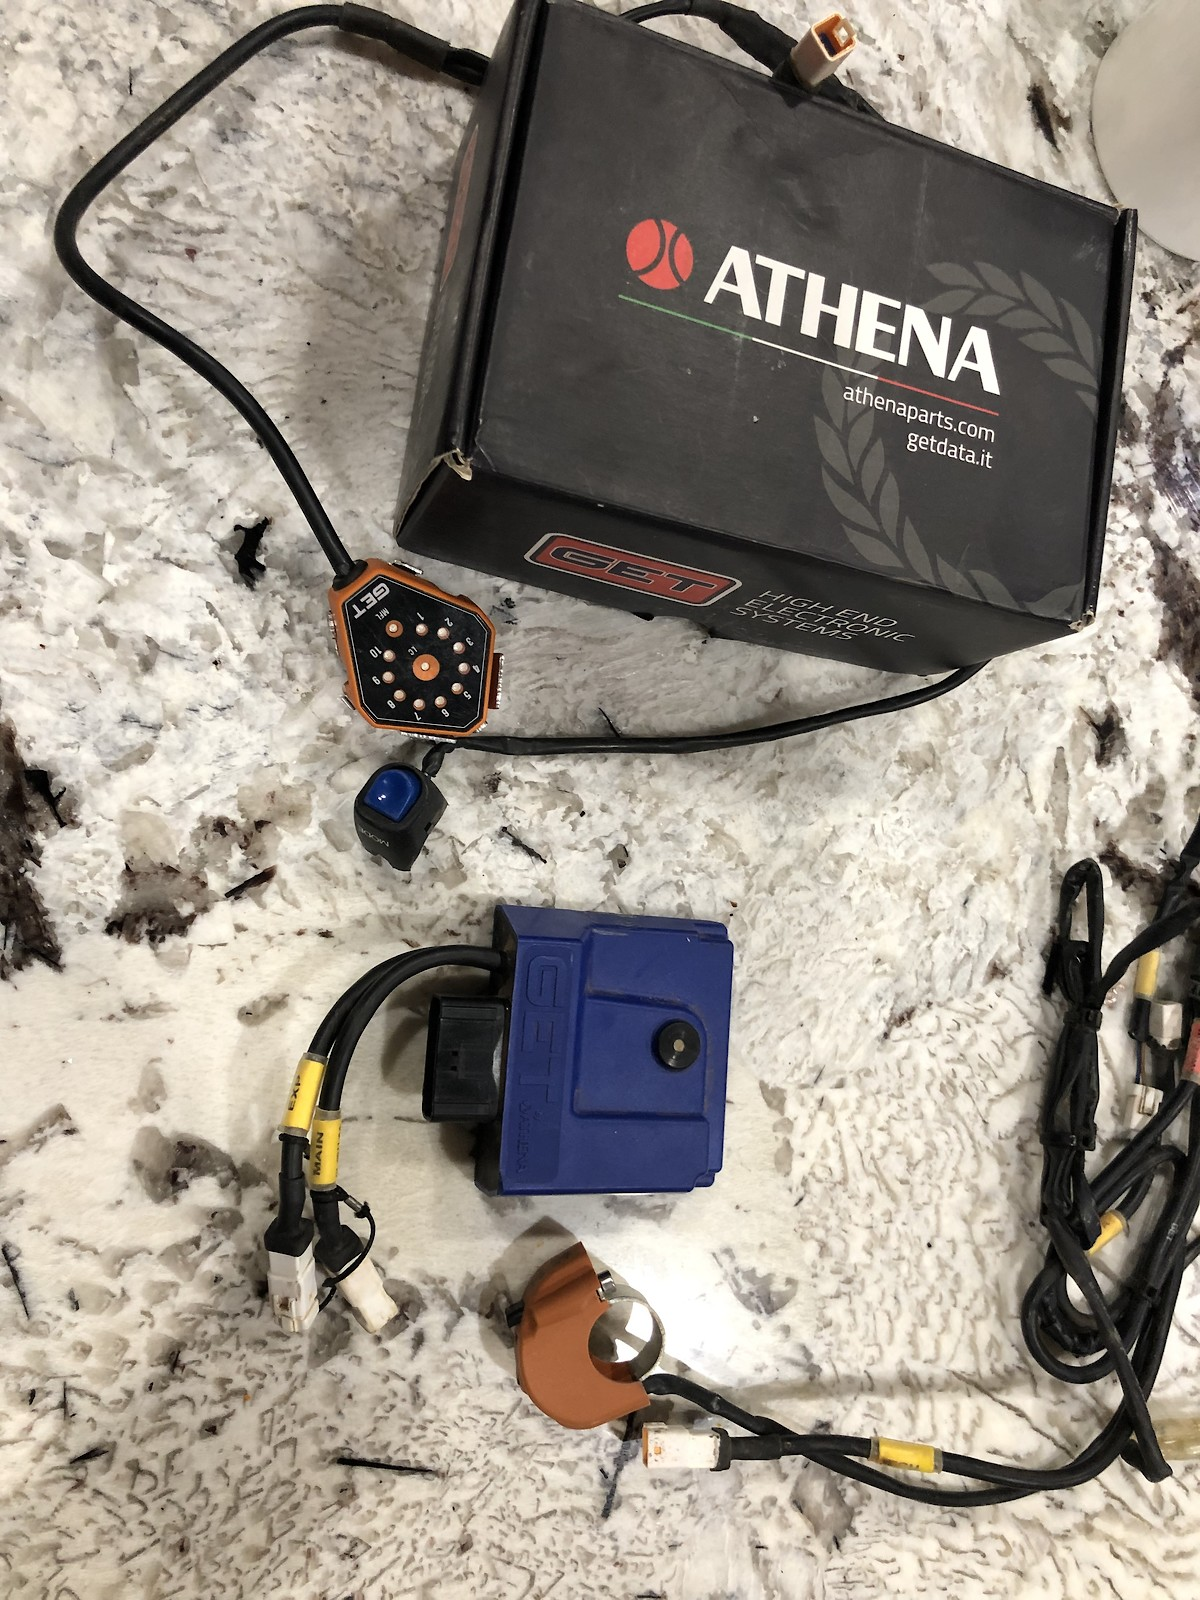 KTM GET ECU w/ GPA, mode and map switch - MAKE OFFER - For